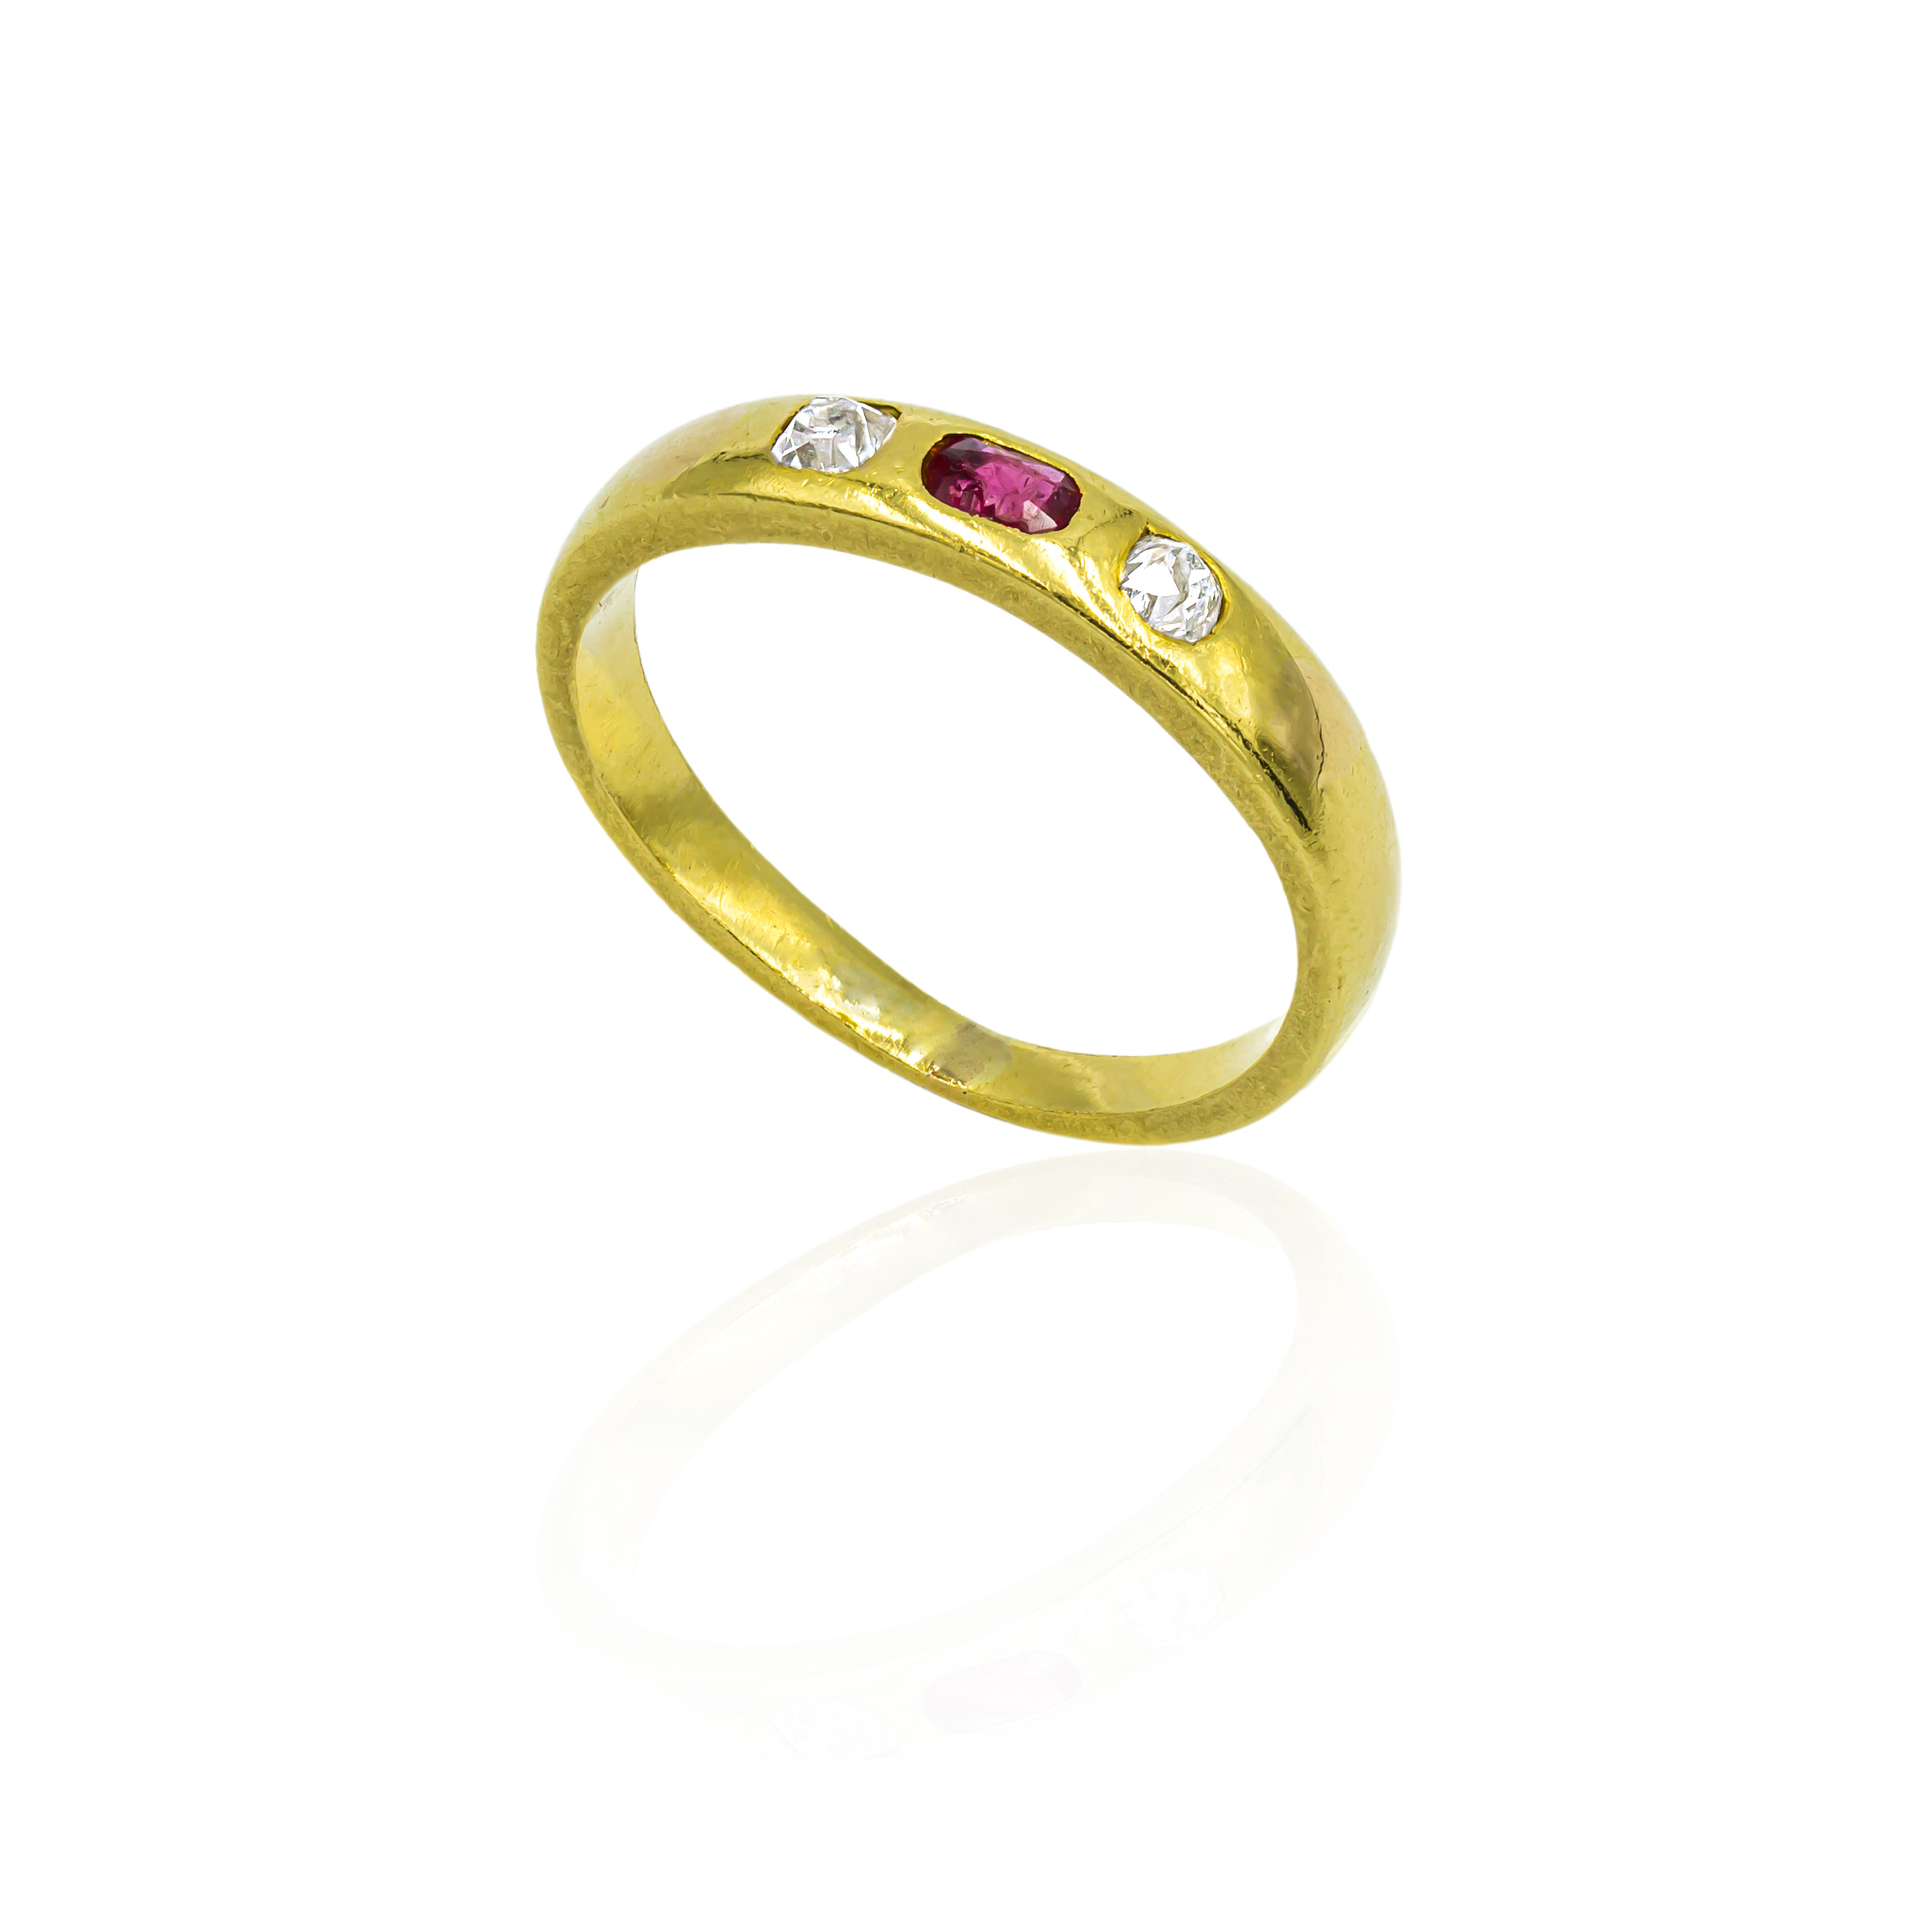 Pre-owned 18ct Yellow Gold Ring With Ruby And Diamonds